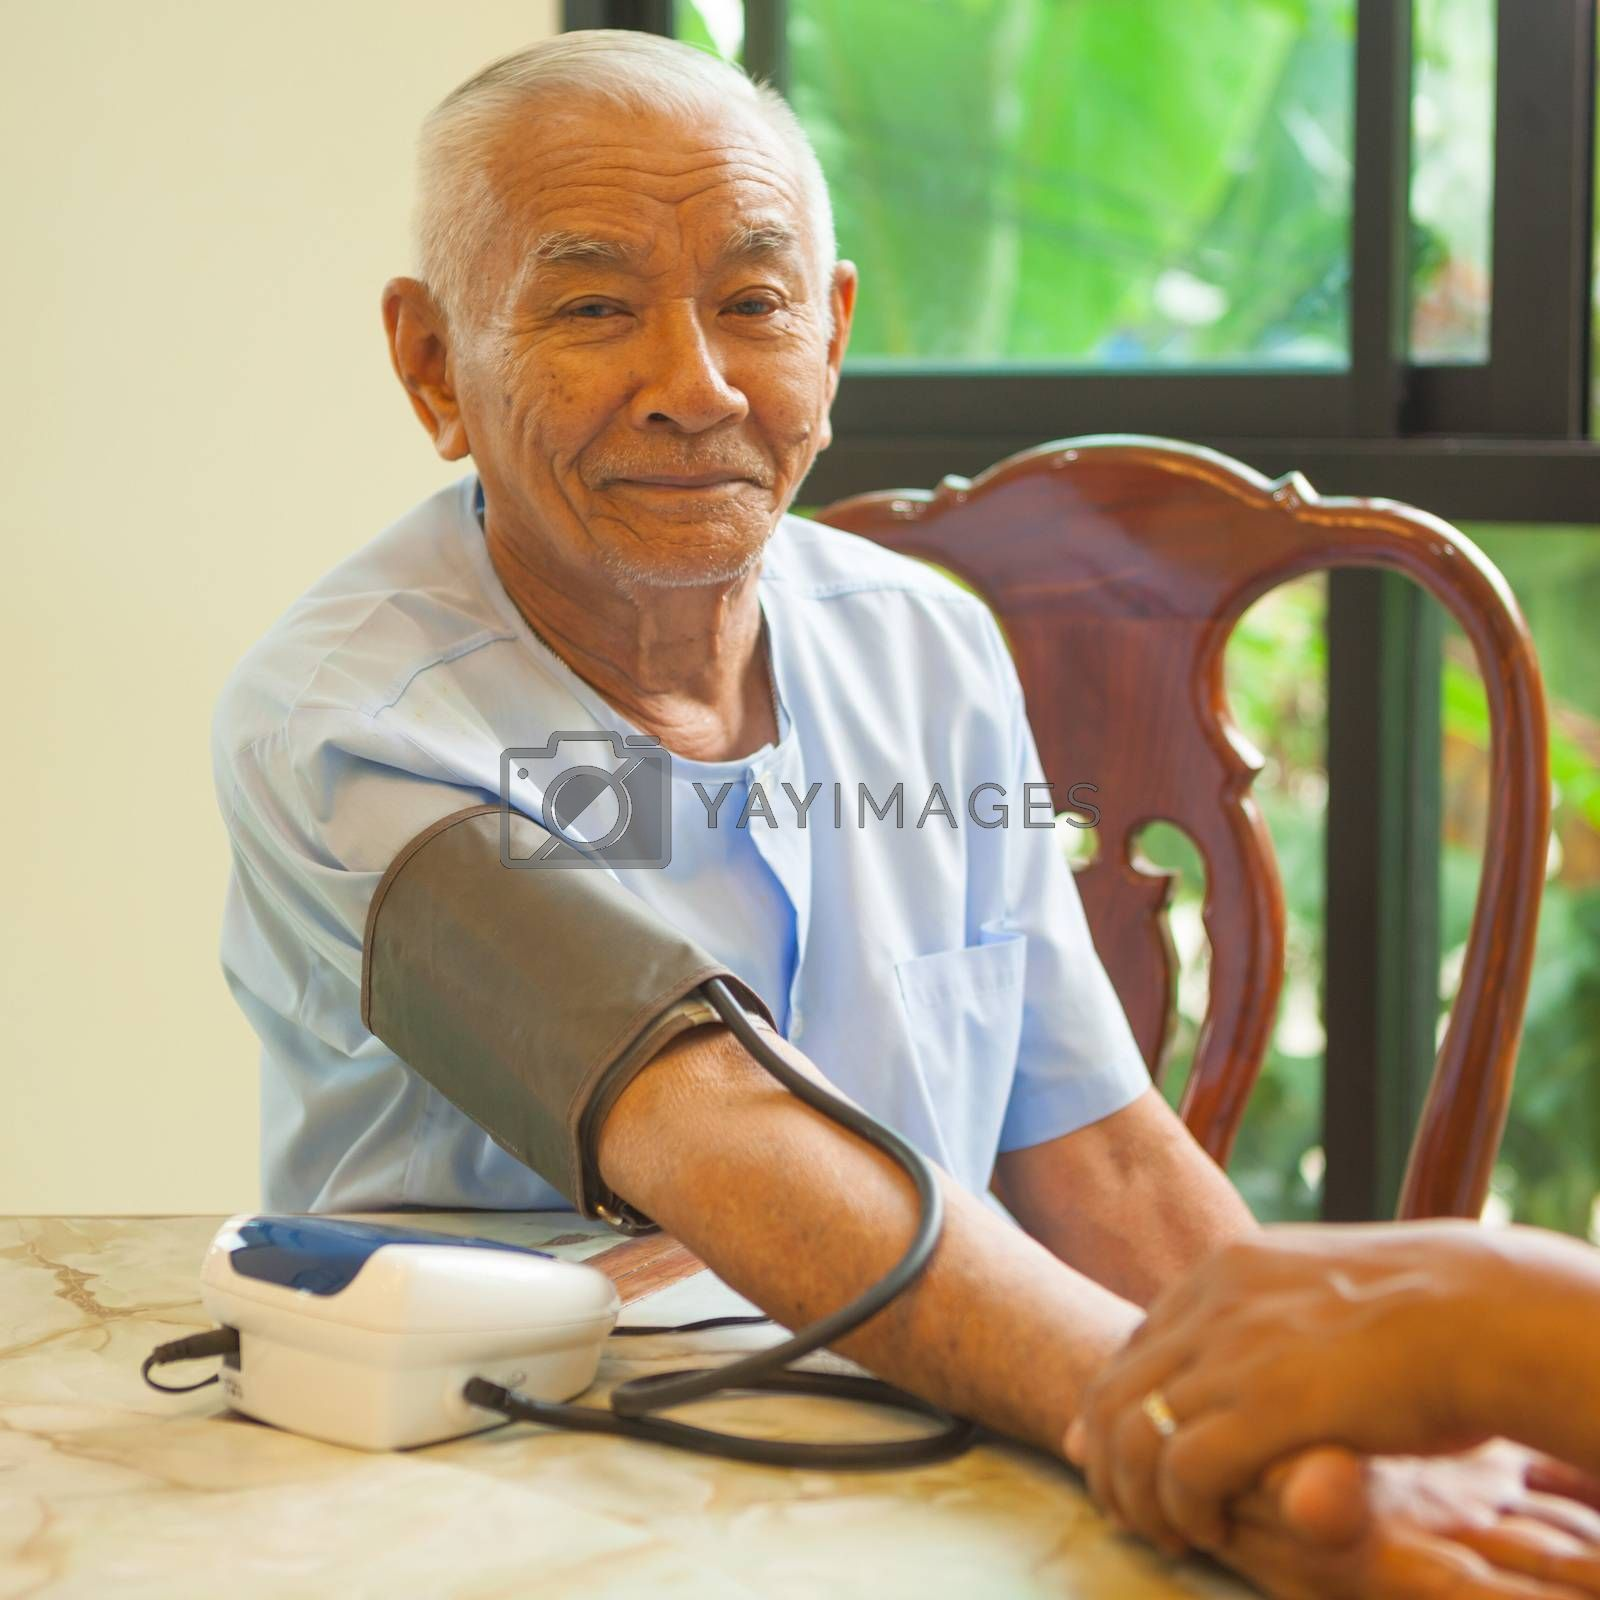 doctor measuring blood pressure of senior asian man patient